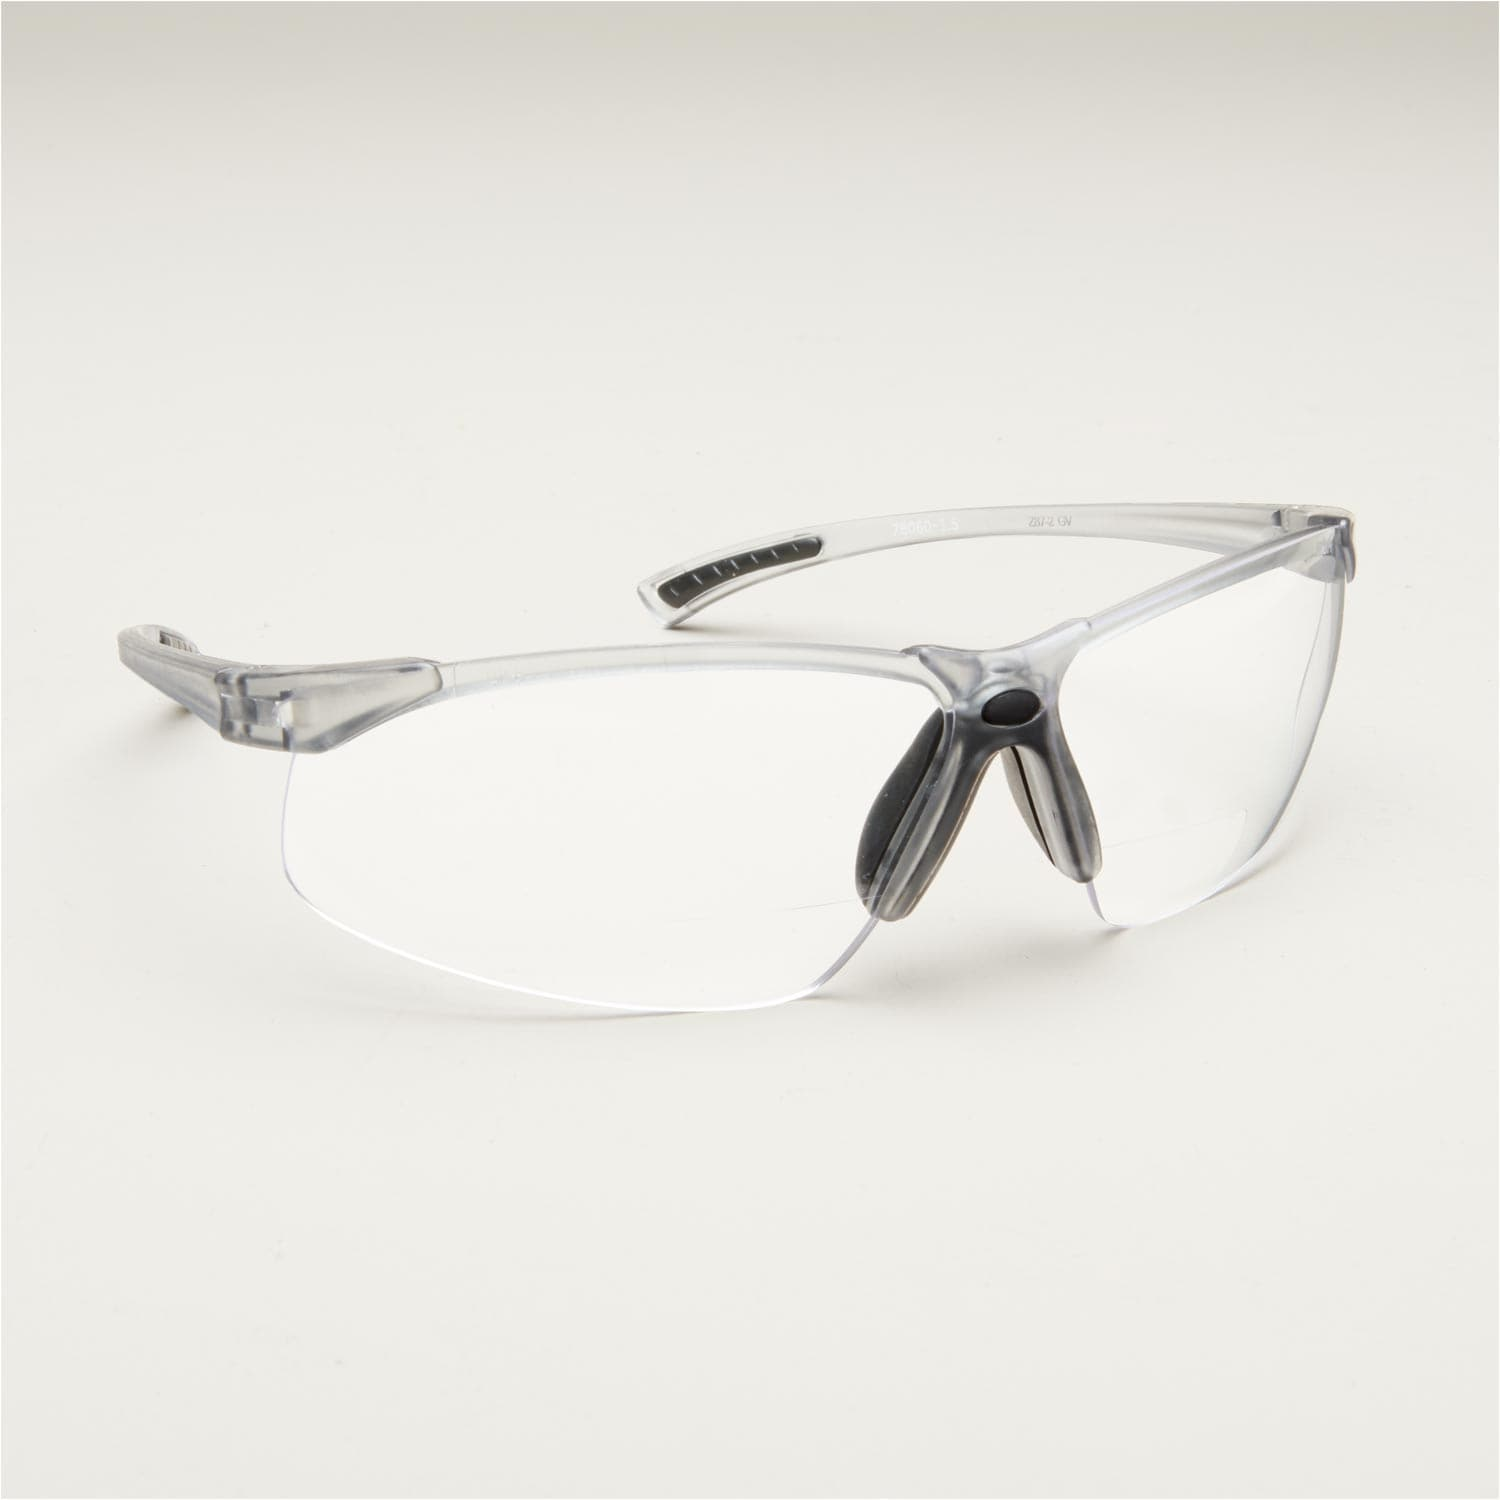 6a8b4e2f7090 Duluth Trading Retro Safety Glasses | Duluth Trading Company